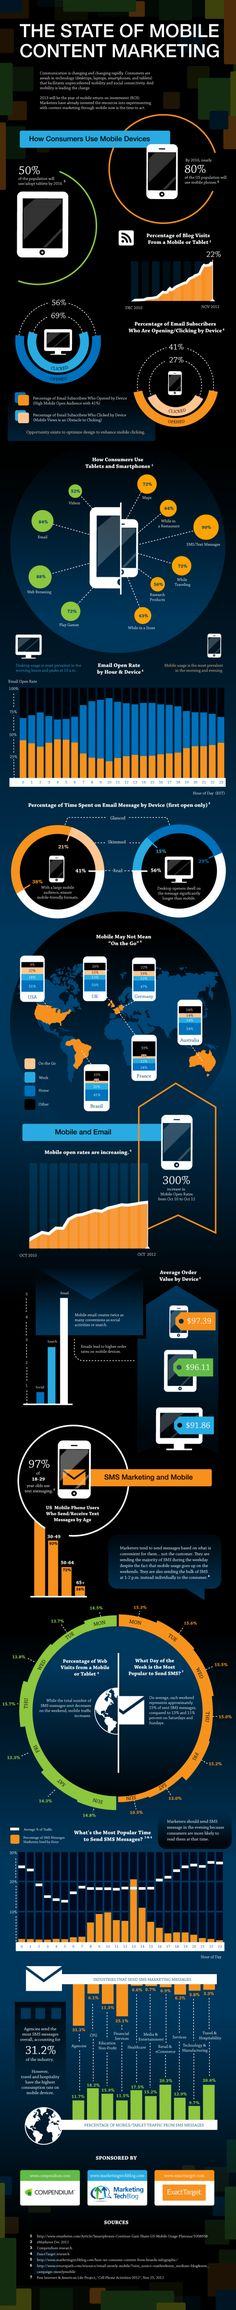 Email service provider ExactTarget has partnered with Compenium and The Marketing Tech Blog to produce an infographic on mobile content marketing. They found that open rates on mobile devices increased by 300% since October 2010, mobile email now creates twice as many conversions as social activities or search, half of mobile users in the US browse, search, and purchase on mobile devices at home, SMS marketing messaging continues to be popular, with 31.2% of agencies using this tactic…